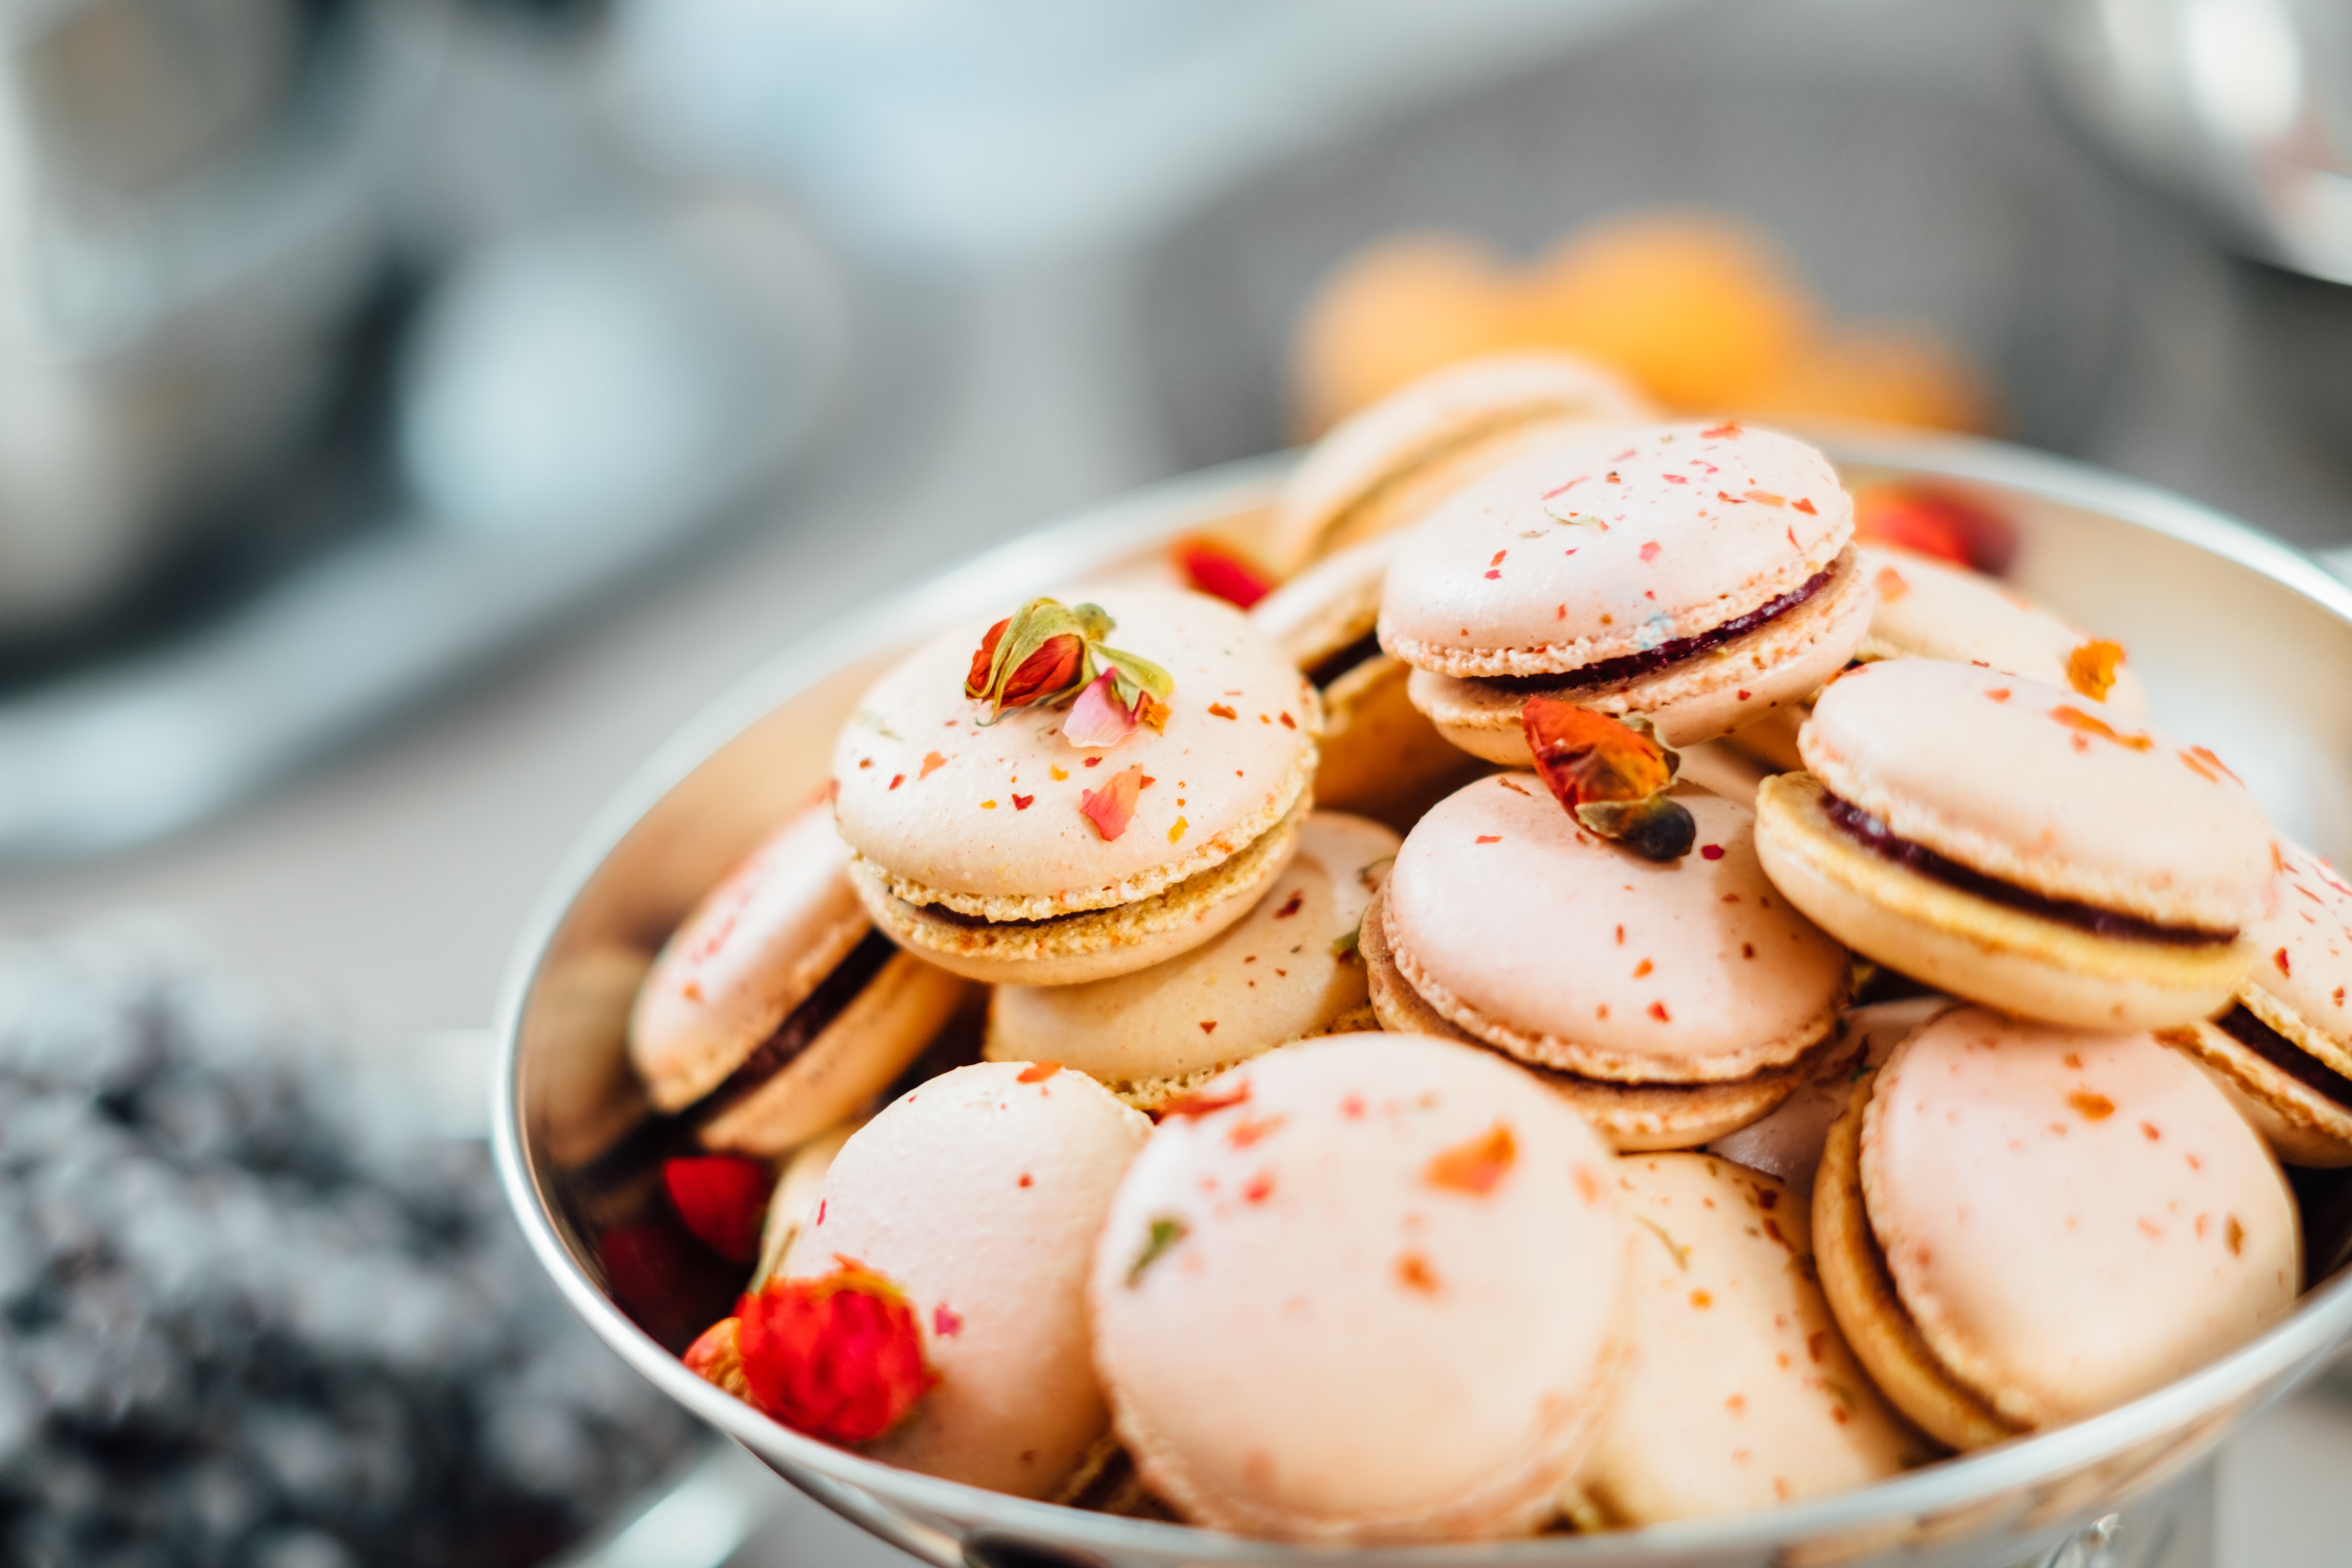 Dessert bowl of pink French macarons with rose petal garnish